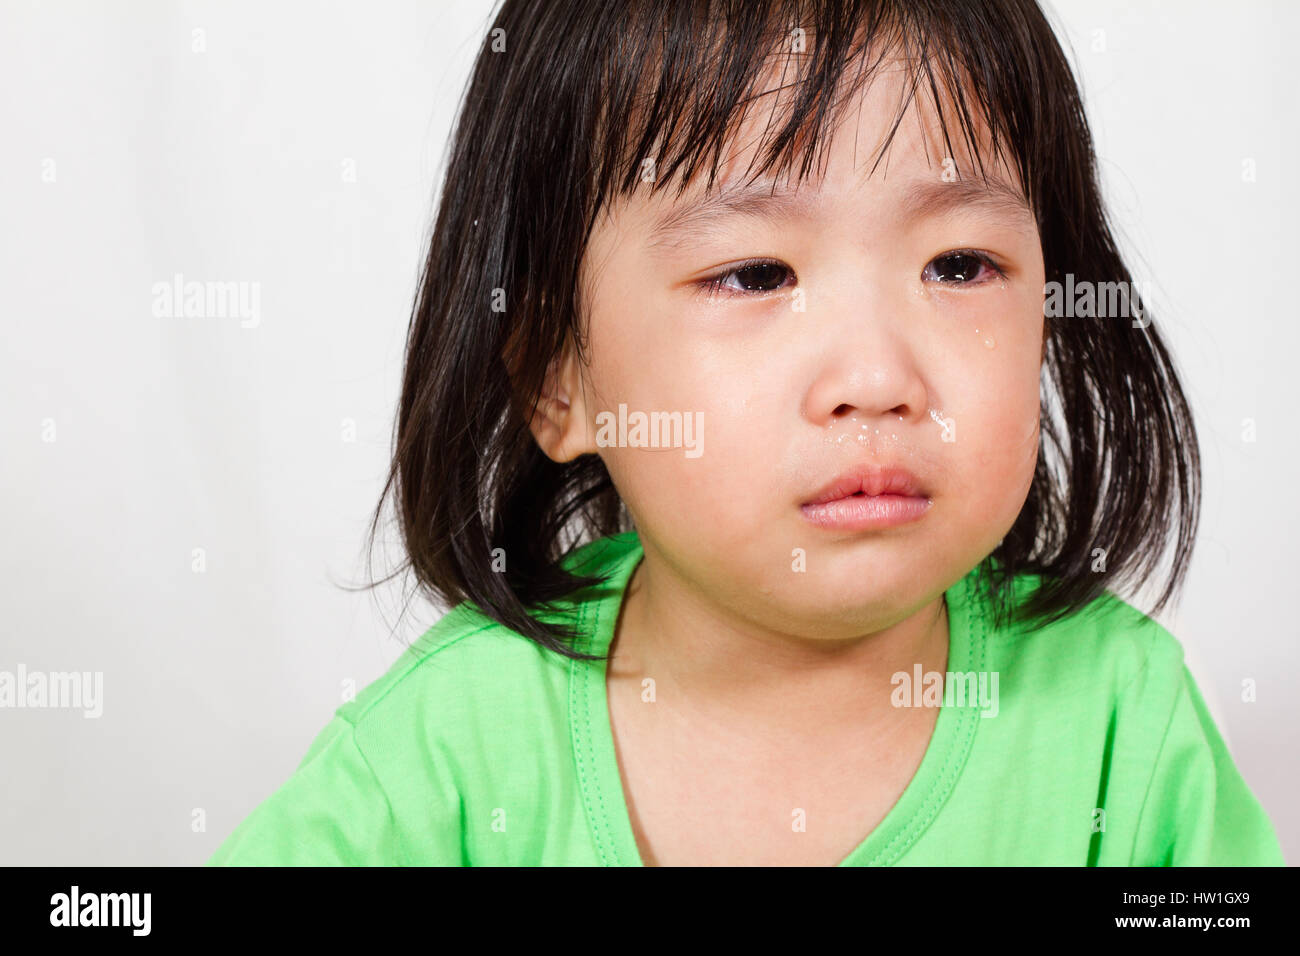 Little Asain Chinese Crying in white background - Stock Image